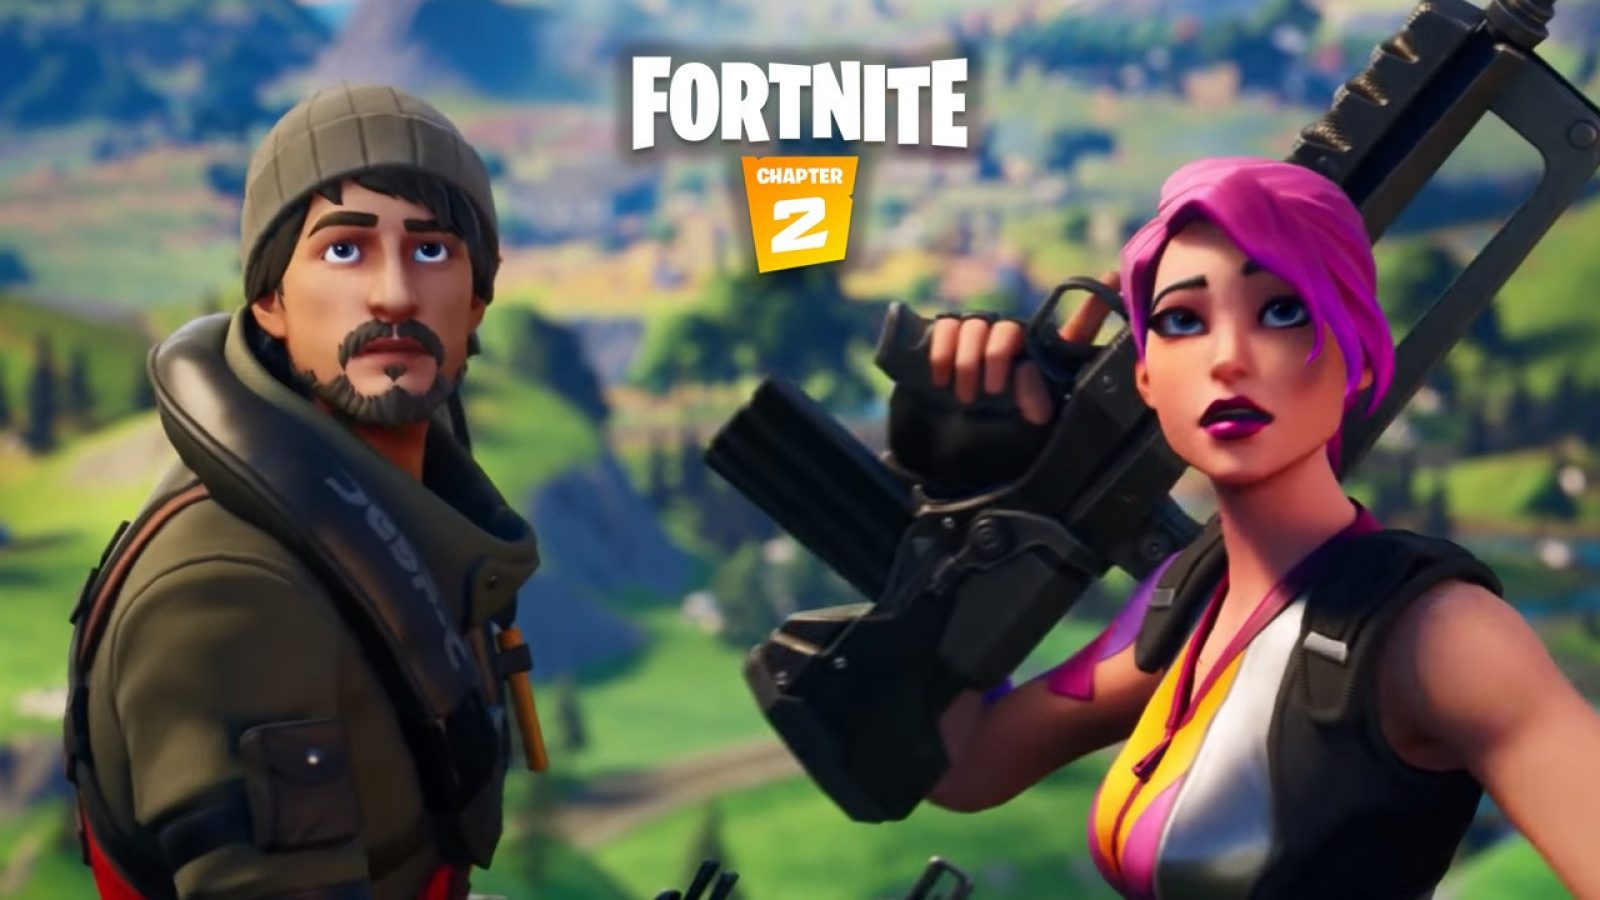 Fortnite Chapter 2 Is Now Live New Trailers Released